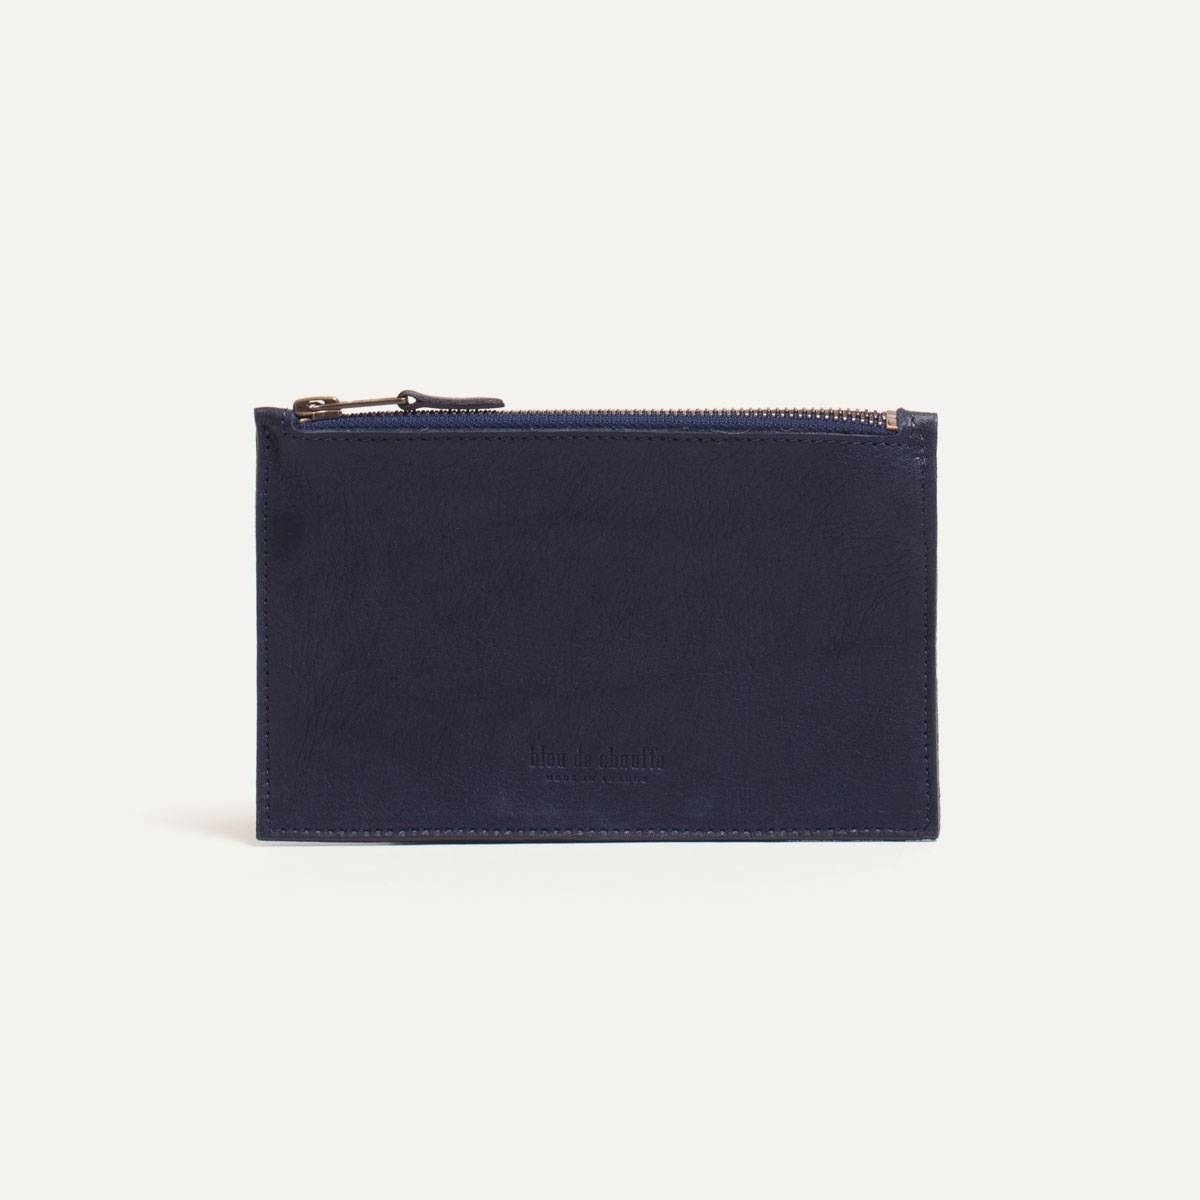 Leather Pouch COSMO S - Navy blue (image n°2)